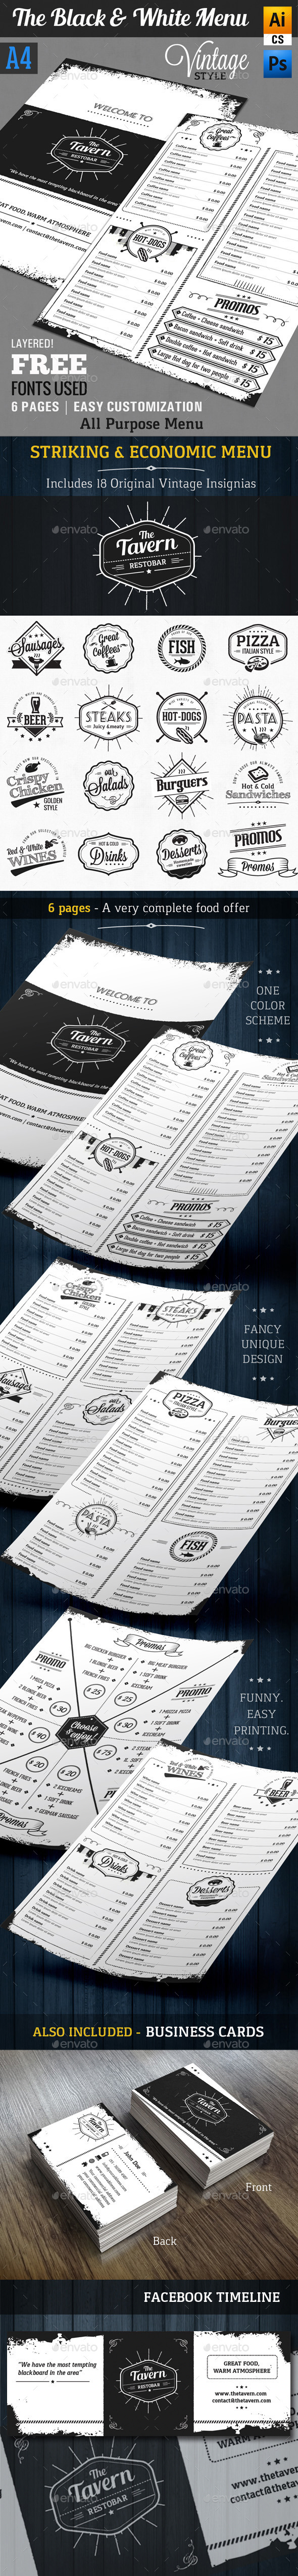 GraphicRiver The Black and White Menu A4 Vintage Style 8925005